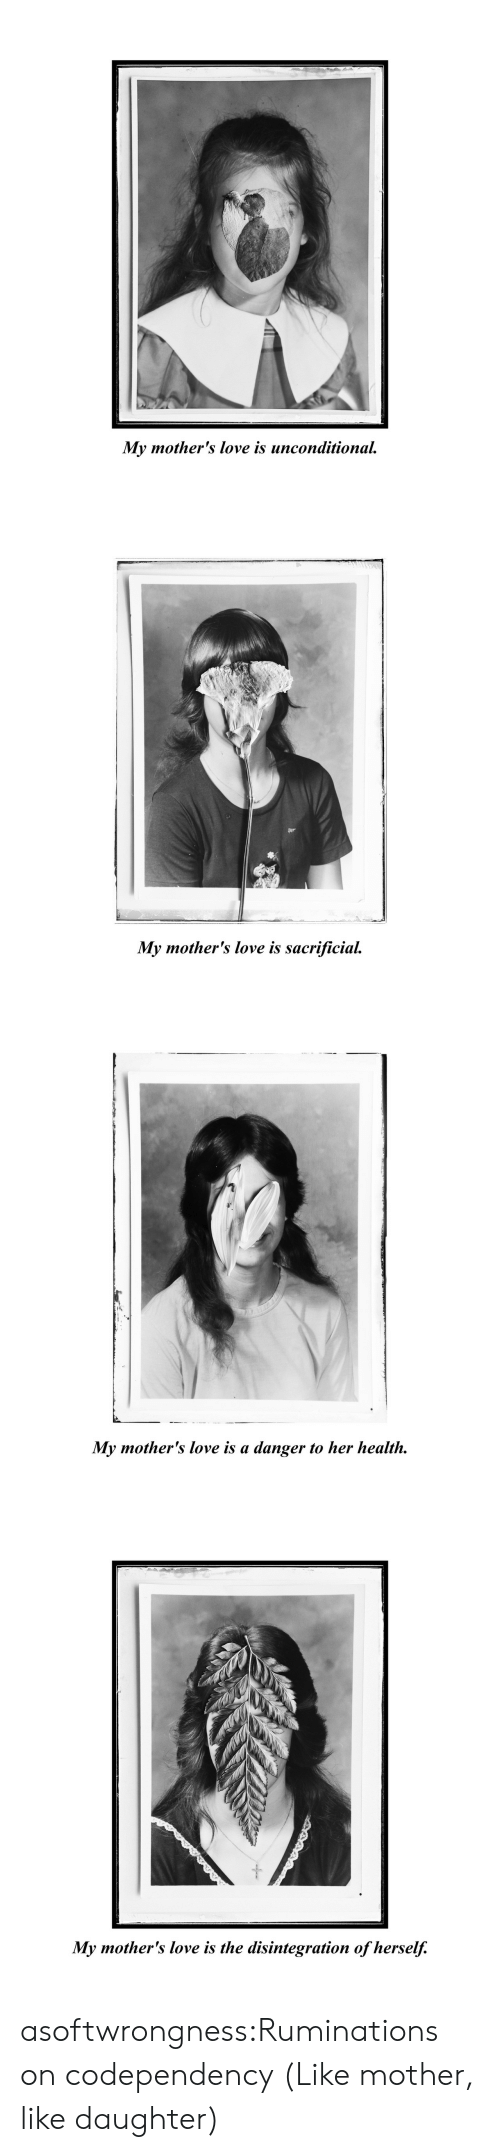 Mothers: My mother's love is unconditional   My mother's love is sacrificial   My mother's love is a danger to her health   My mother's love is the disintegration of herself. asoftwrongness:Ruminations on codependency (Like mother, like daughter)